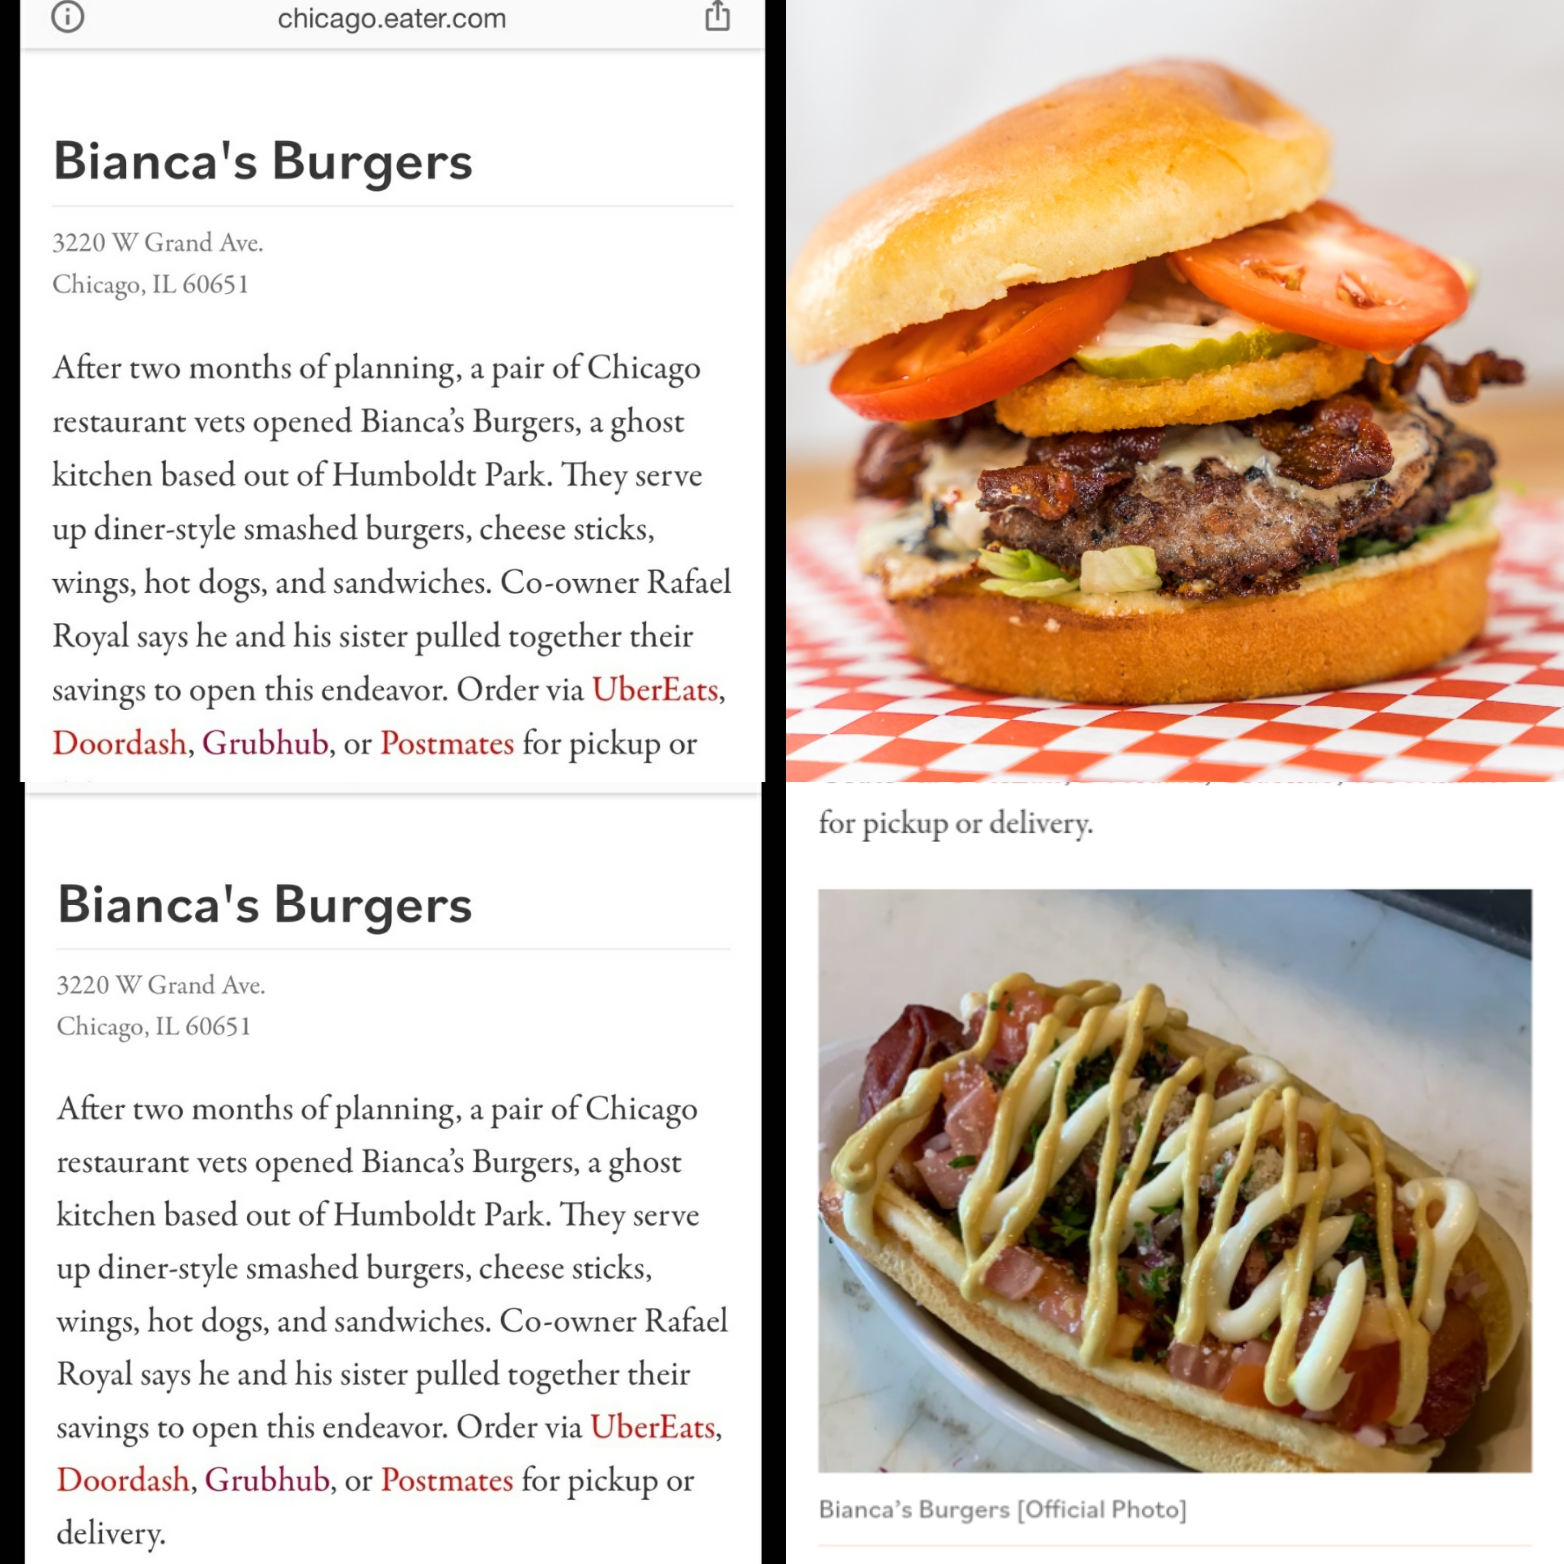 Bianca's Burgers 3220 W Grand Ave, Chicago